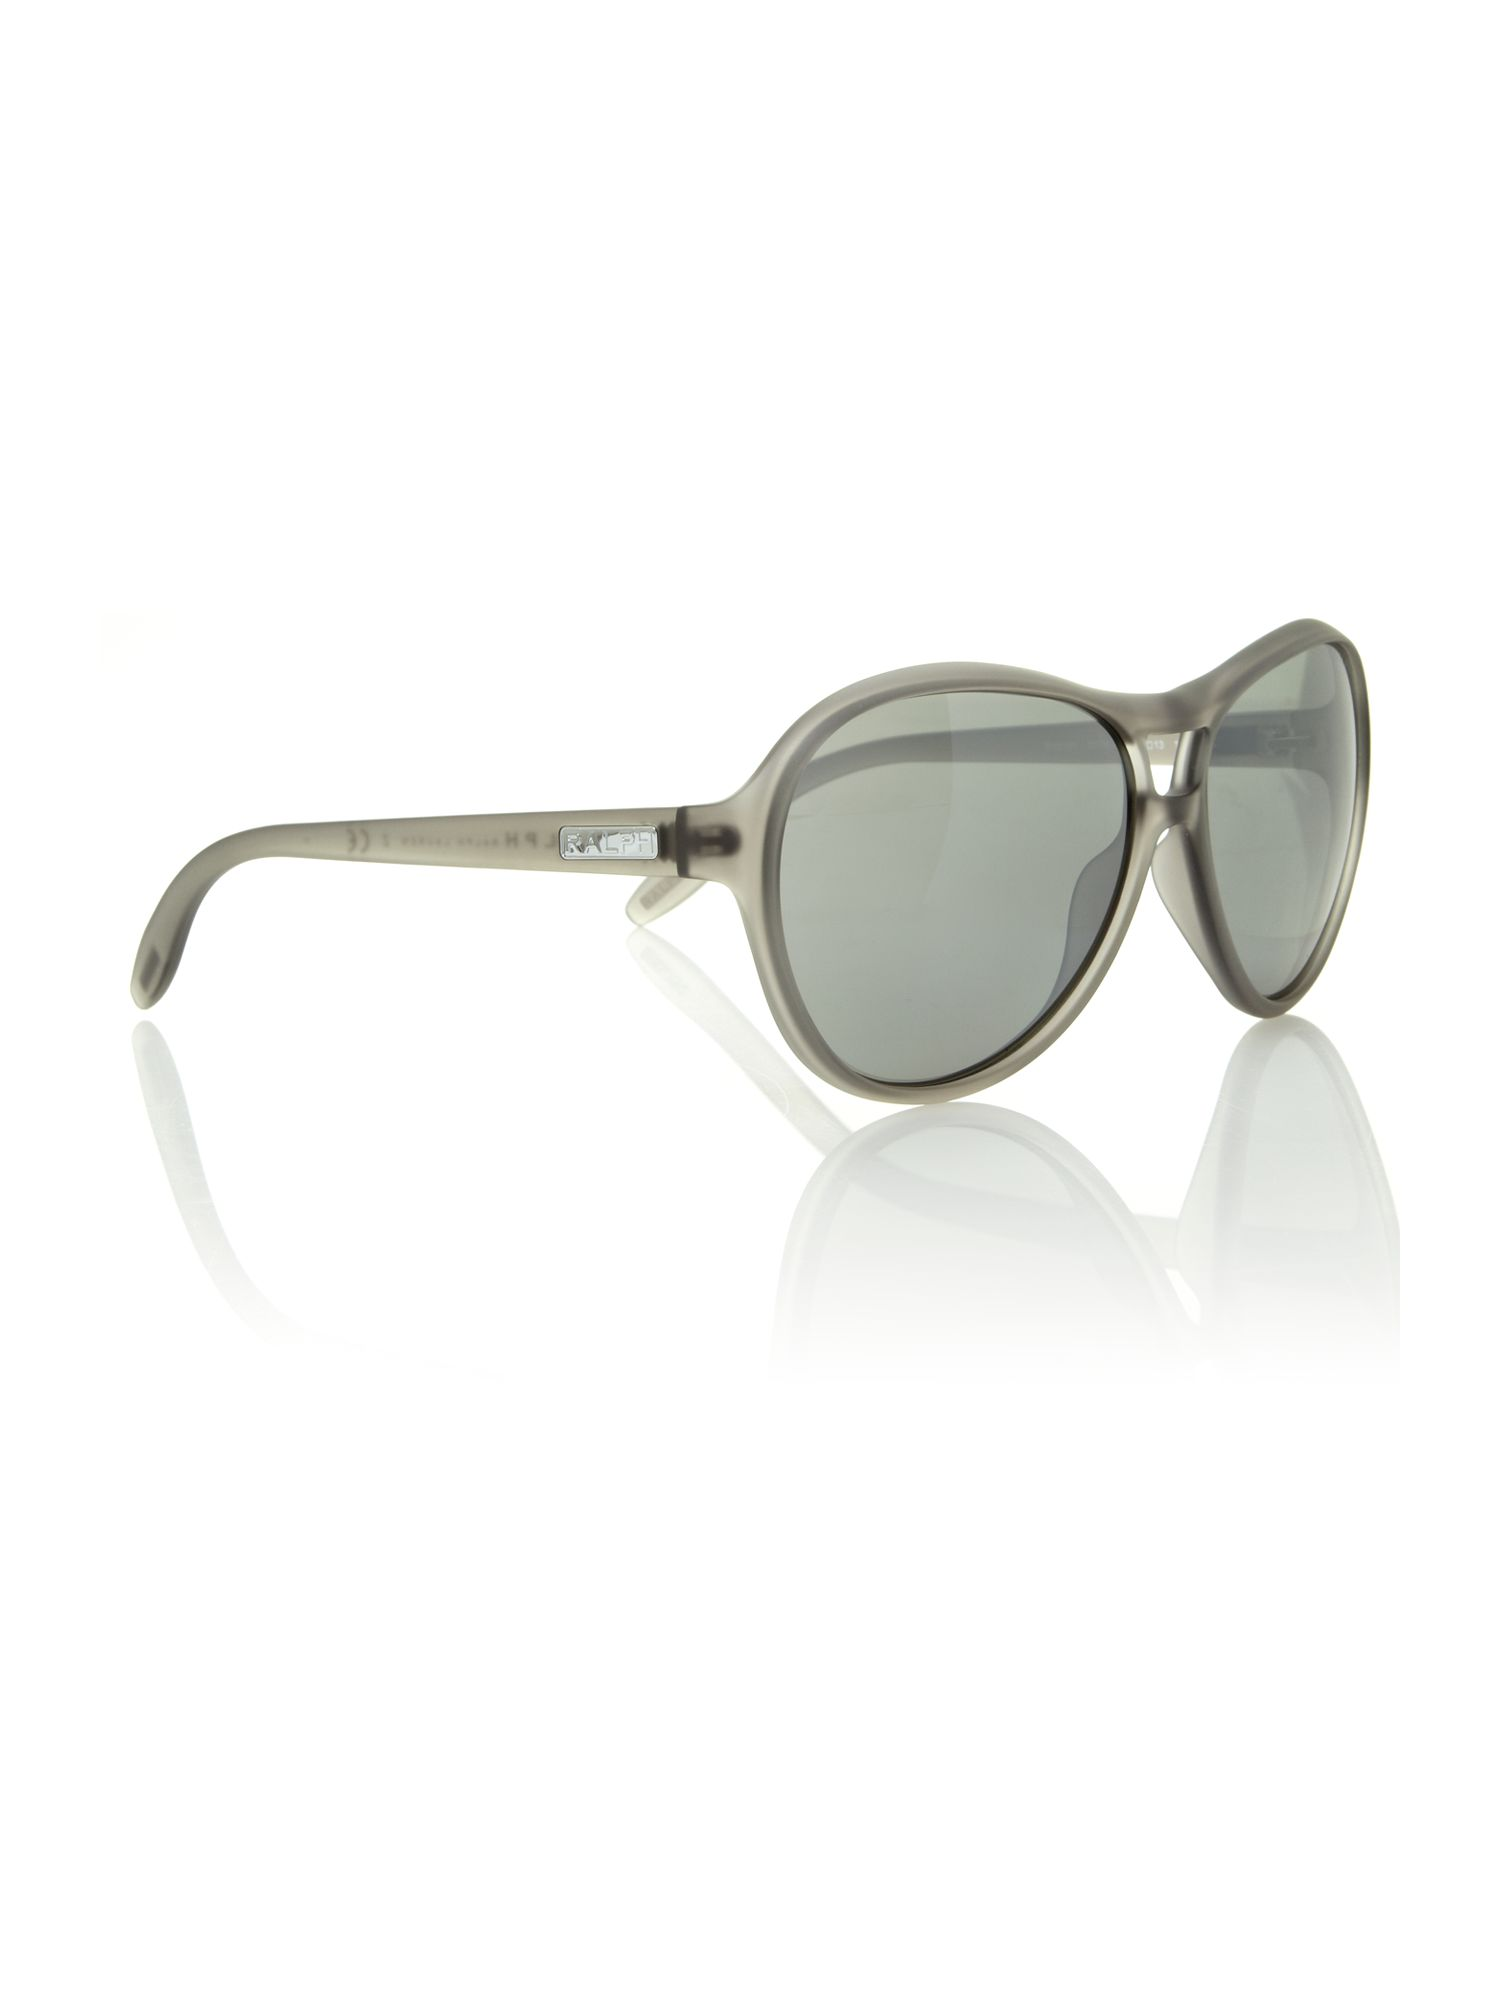 Ladies RA5151 grey aviator sunglasses